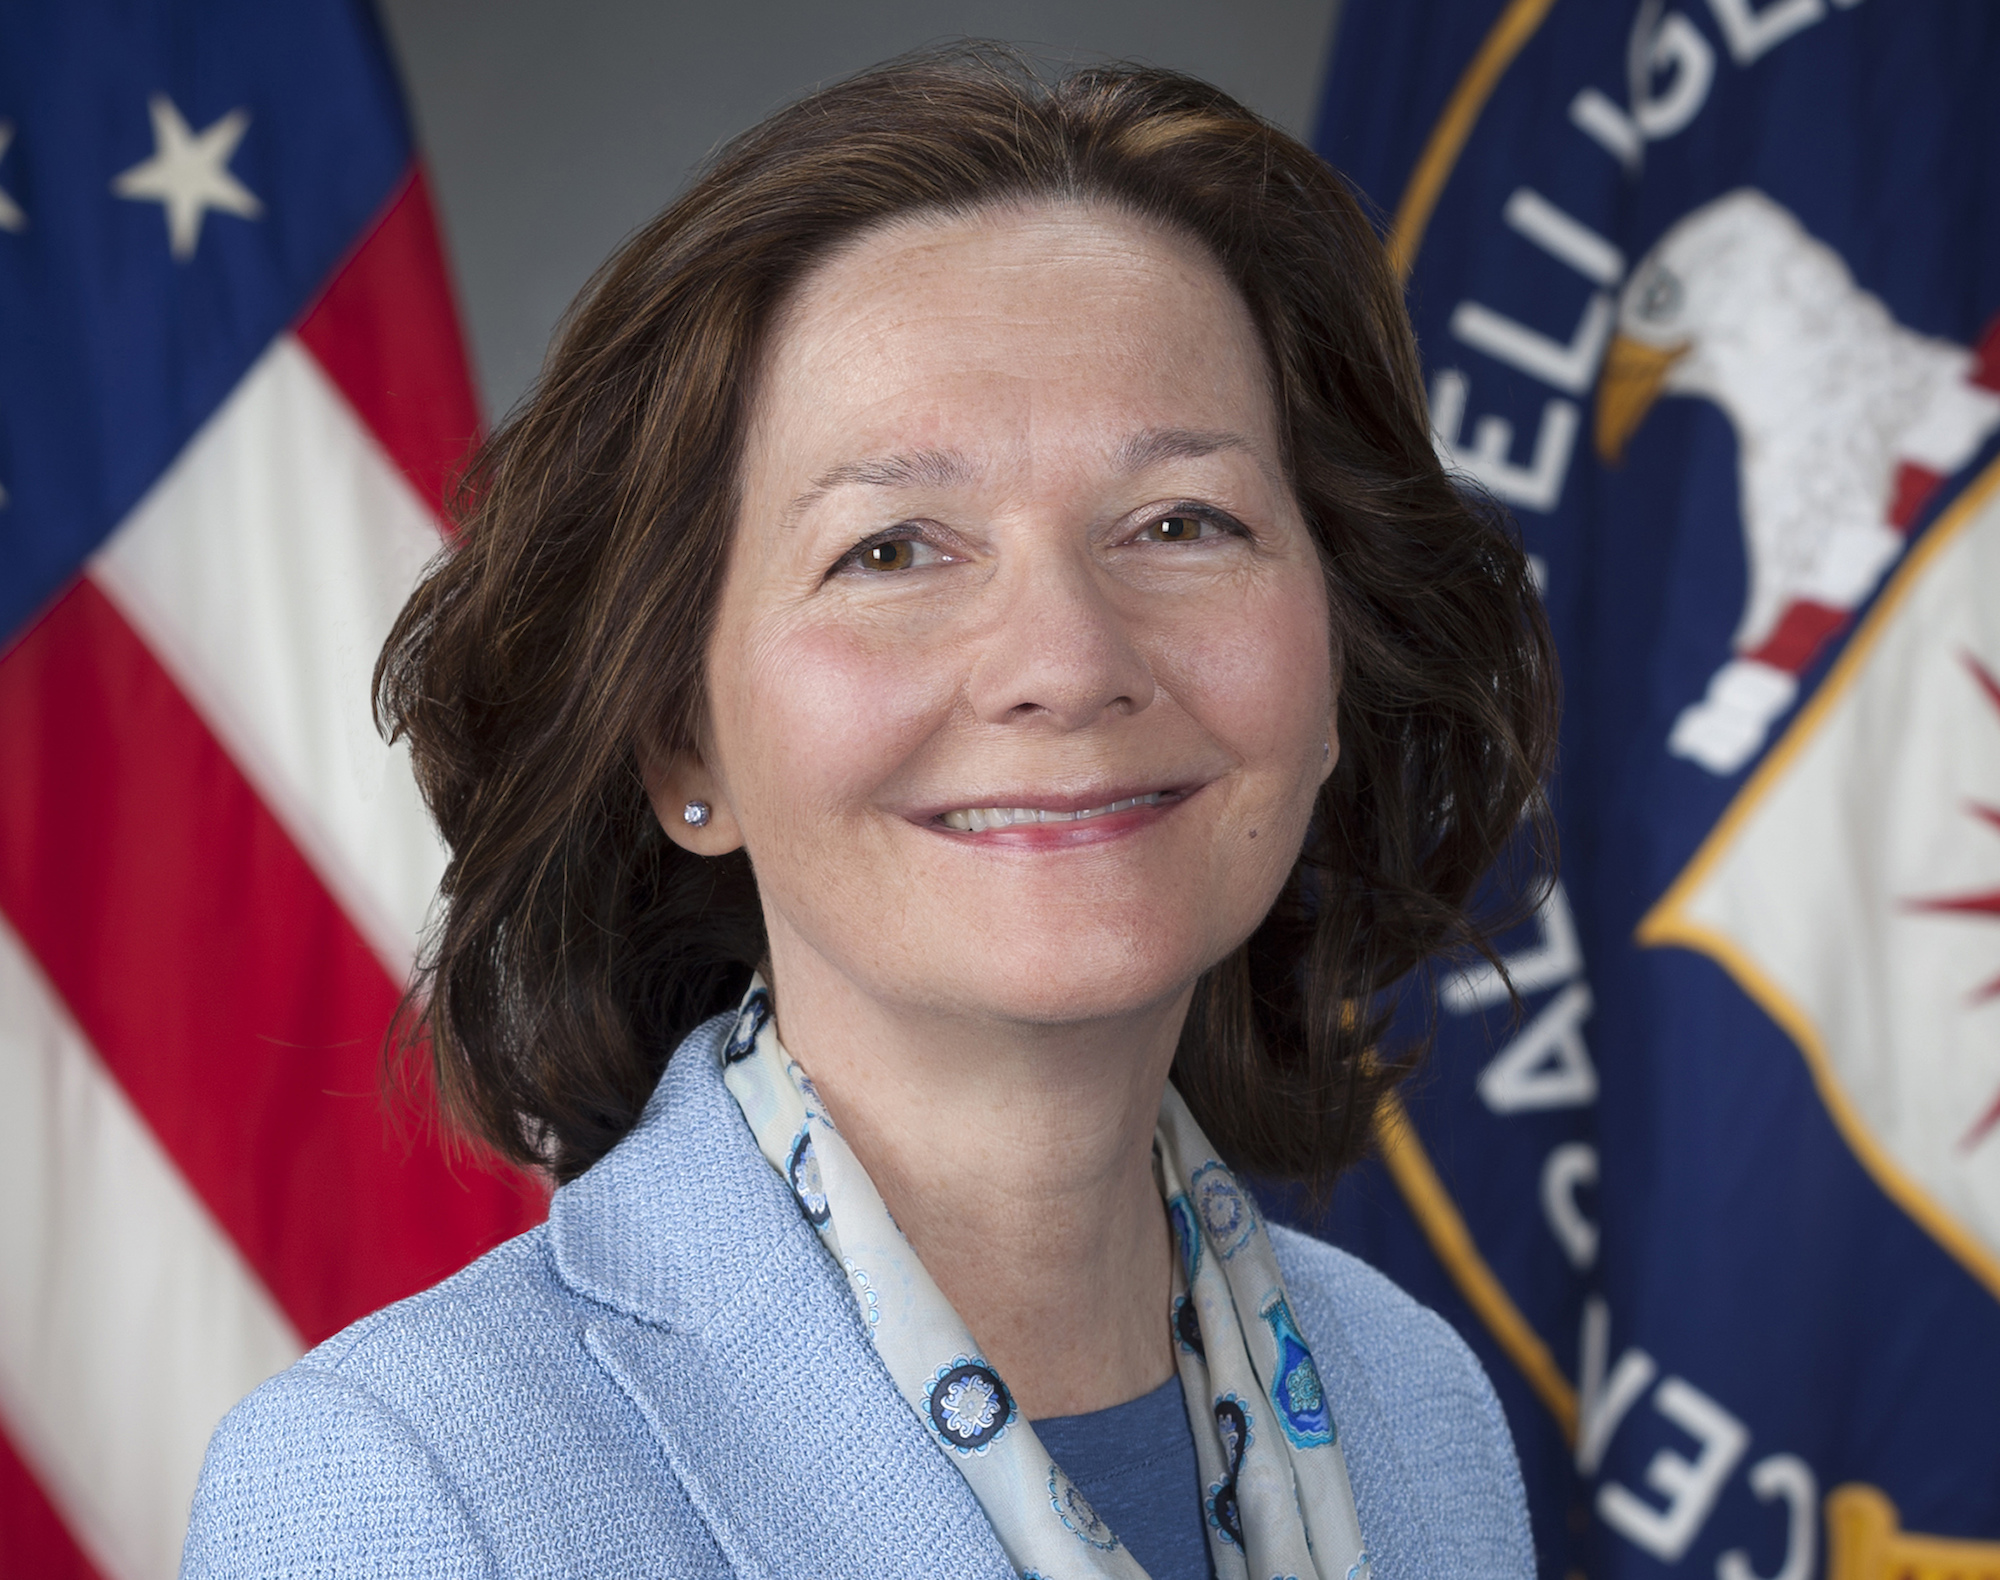 Gina Haspel, who joined the CIA in 1985, has been chief of station at CIA outposts abroad. President Donald Trump tweeted March 13, 2018, that he would nominate CIA Director Mike Pompeo to be the new secretary of state and that he would nominate Haspel to replace him. (CIA via AP)